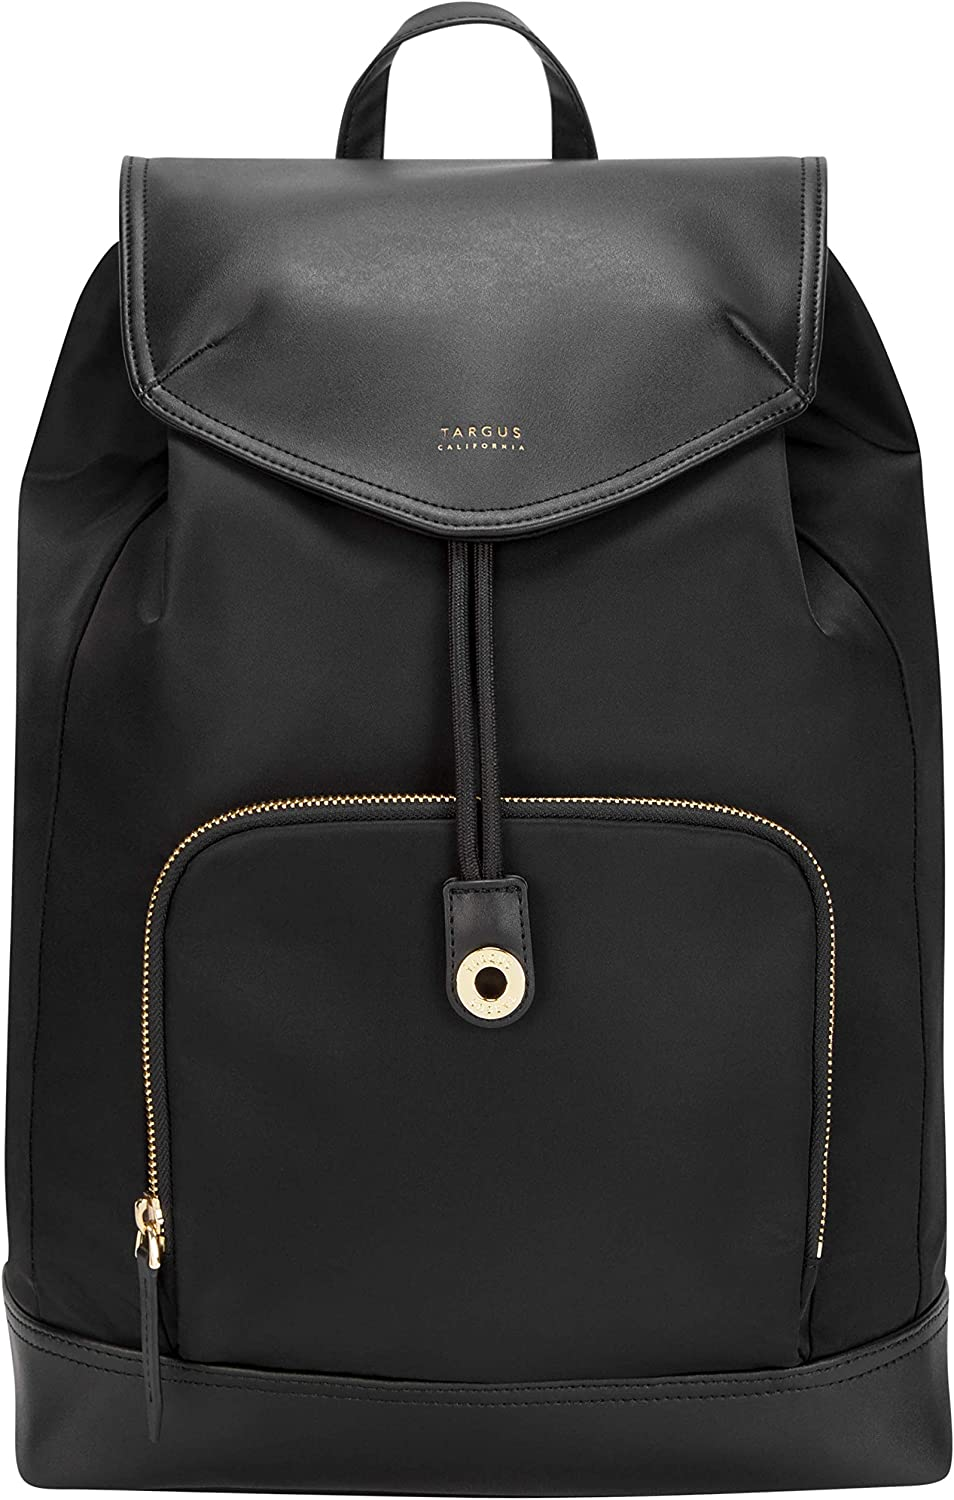 Targus Newport Drawstring Travel and Commute Backpack with Protective Storage fit up to 15-Inch Laptop, Black (TSB964GL)